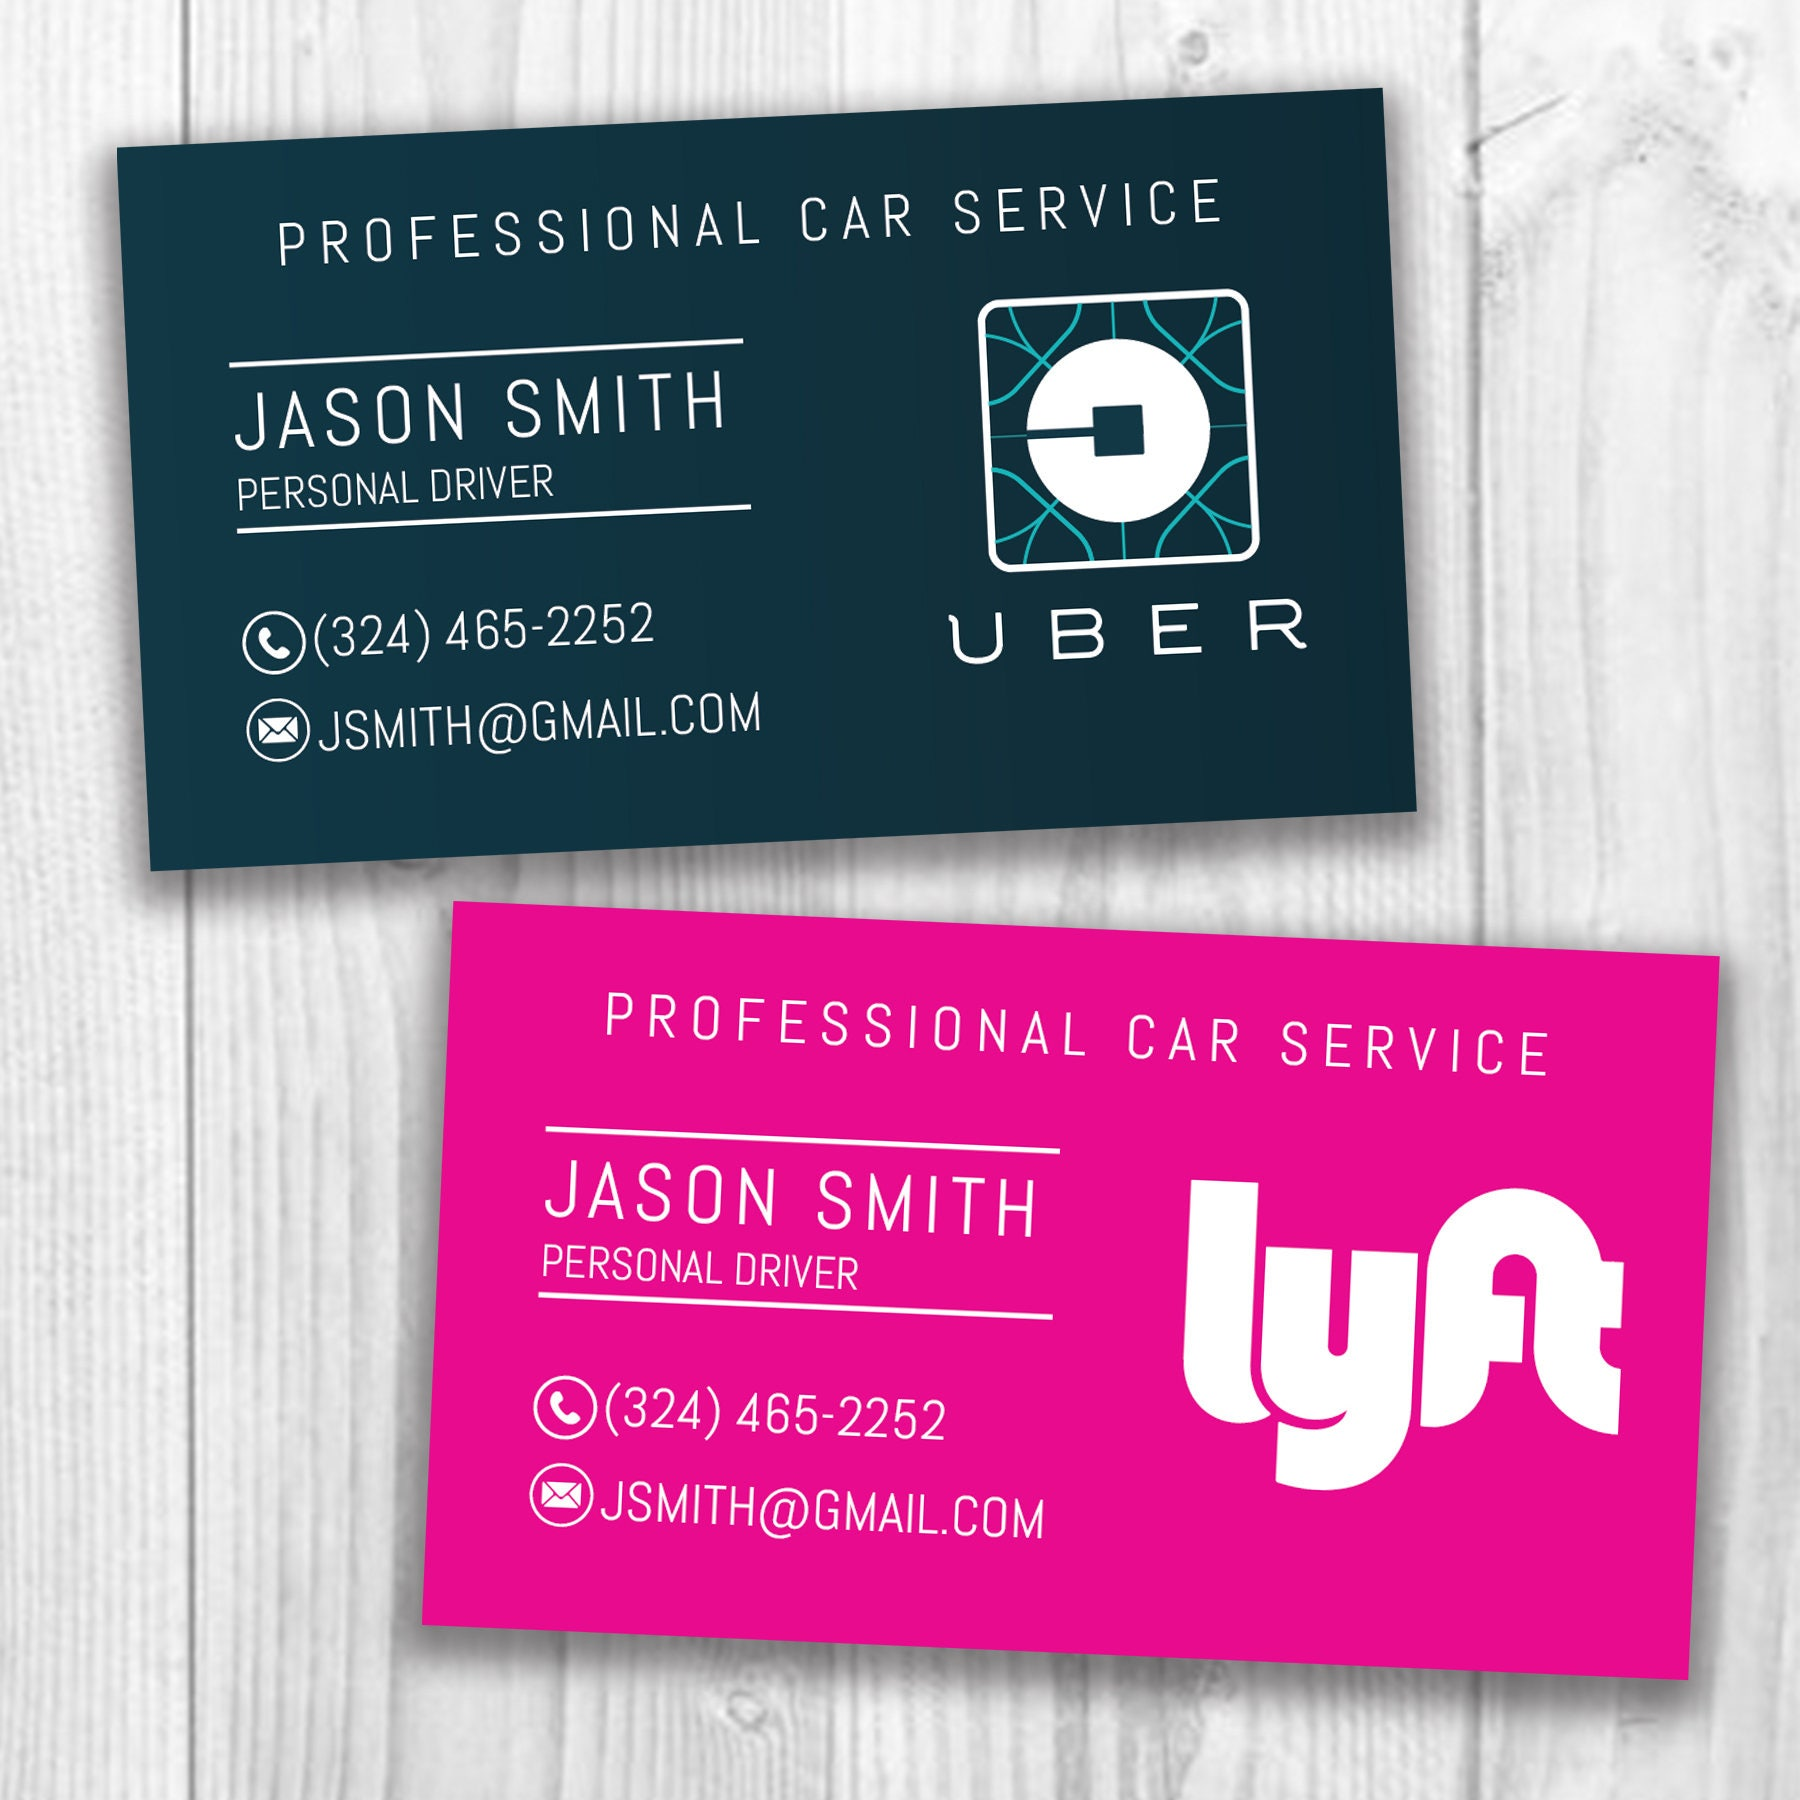 Uberlyft business cards uber eats social media cards zoom magicingreecefo Image collections